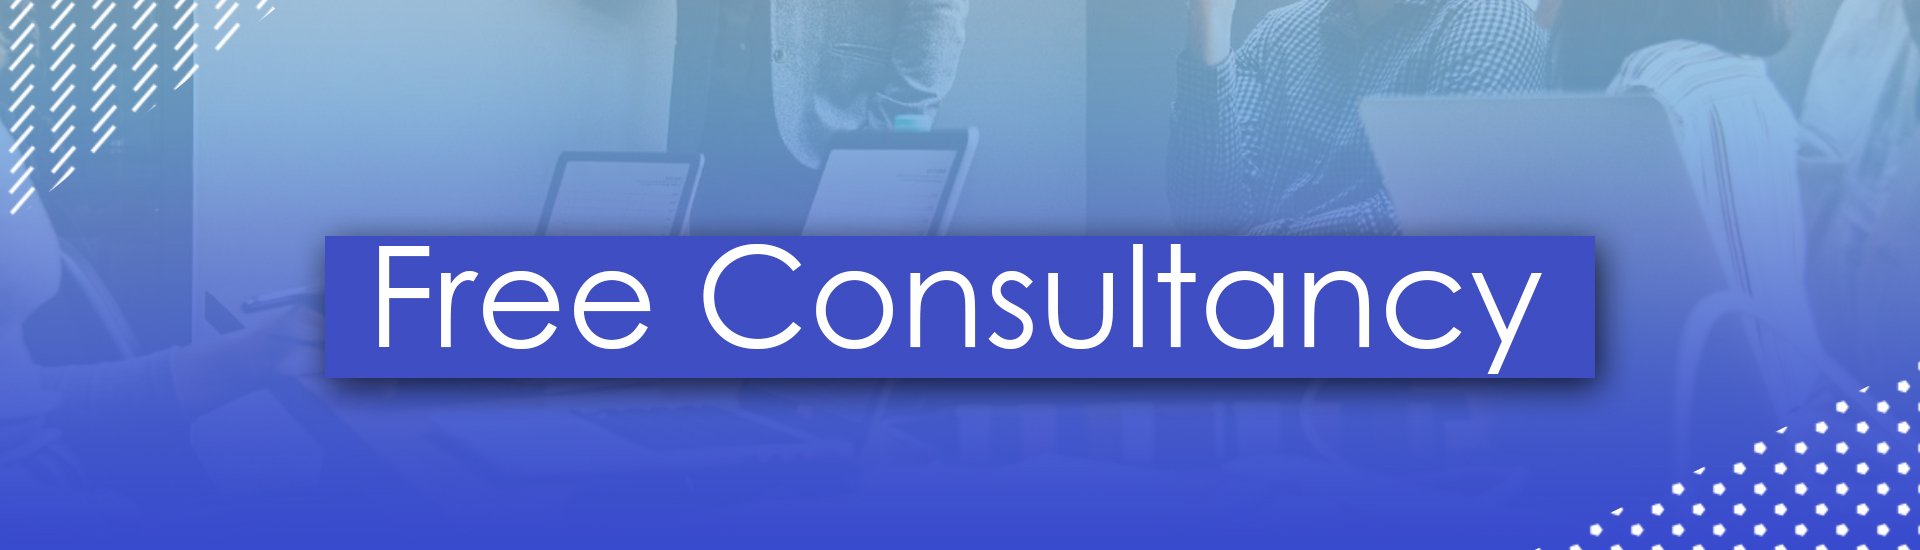 Free Consultancy for IT Services Software and Website design and web development